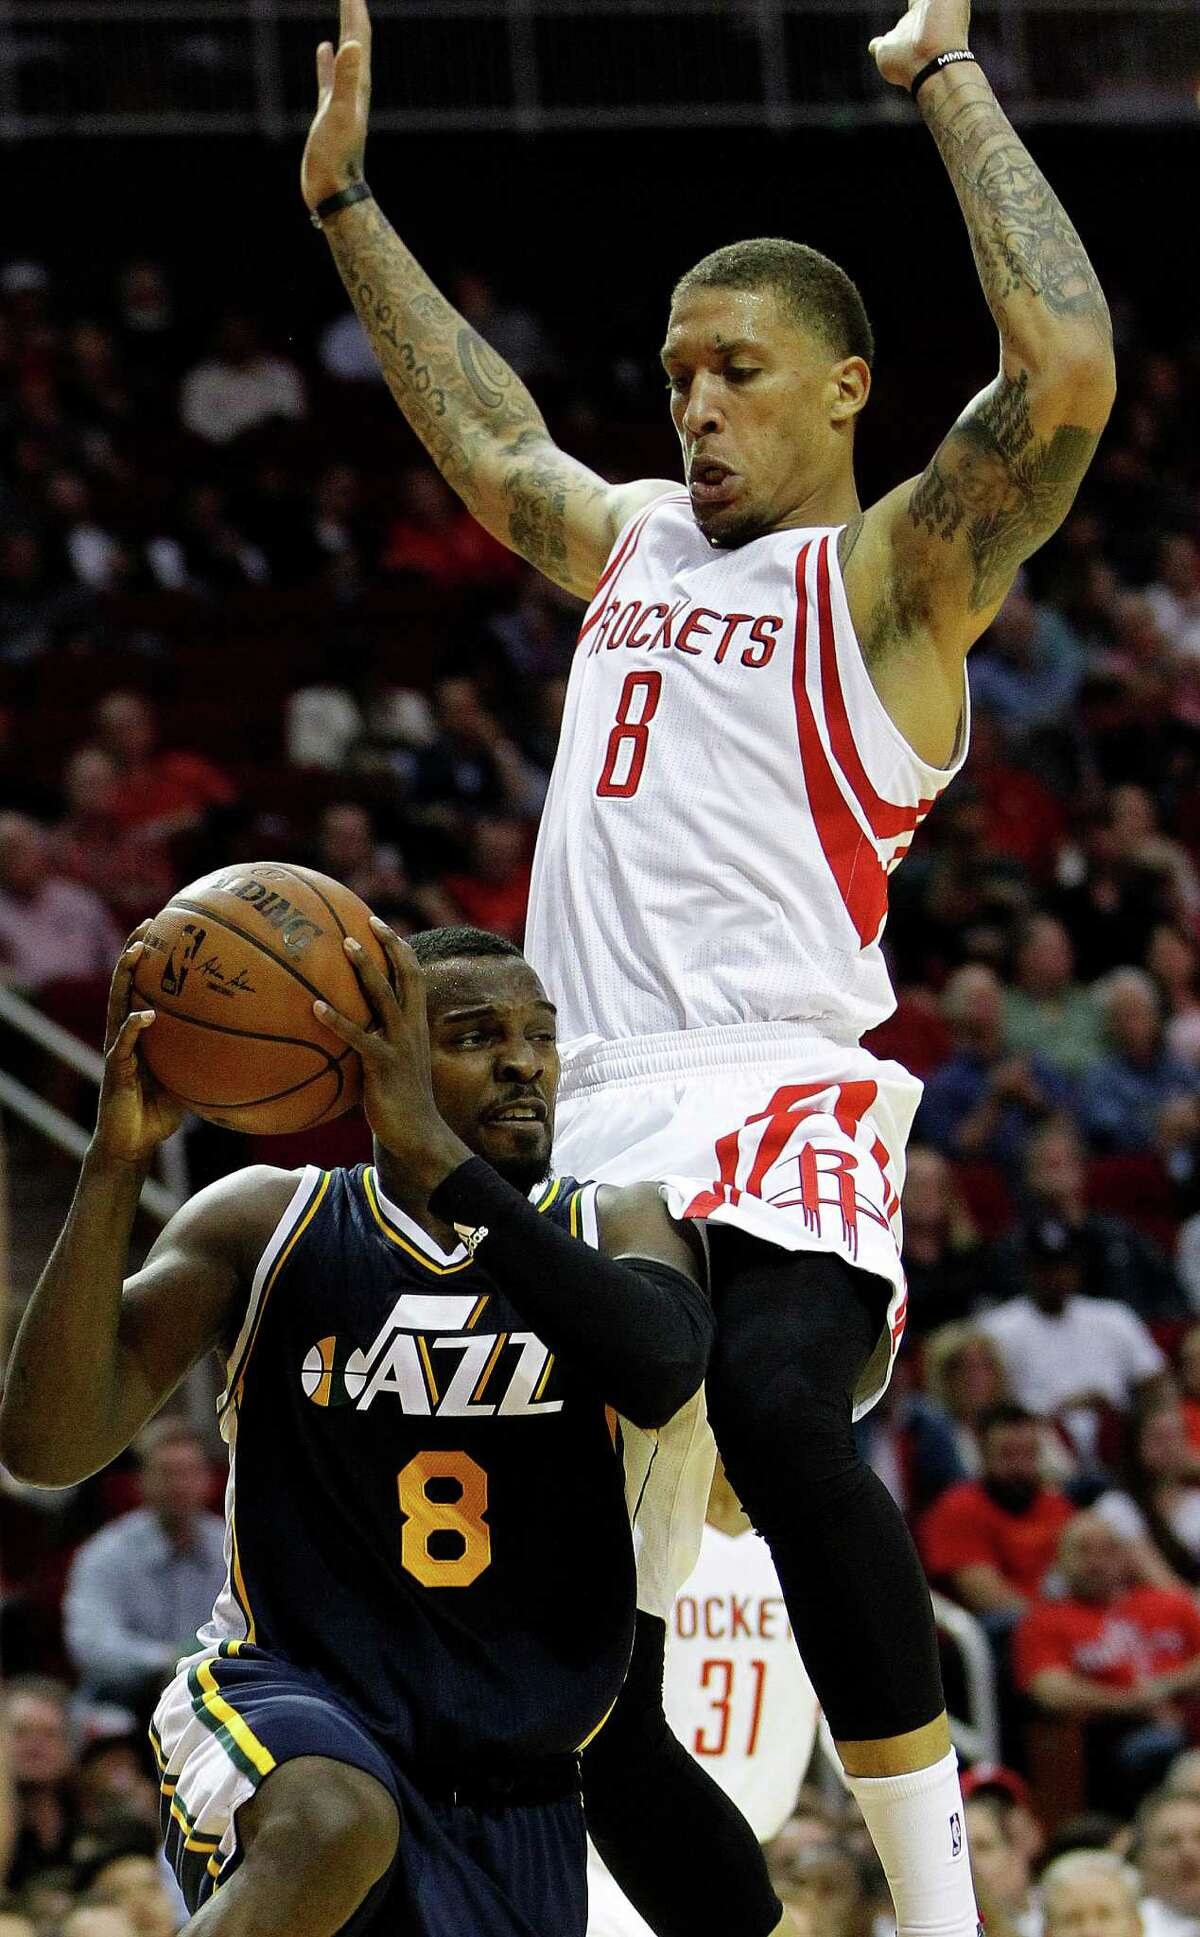 Utah Jazz guard Shelvin Mack (8) goes up against Houston Rockets forward Michael Beasley (8) under the basket during the first half of an NBA basketball game at Toyota Center, Wednesday, March 23, 2016.